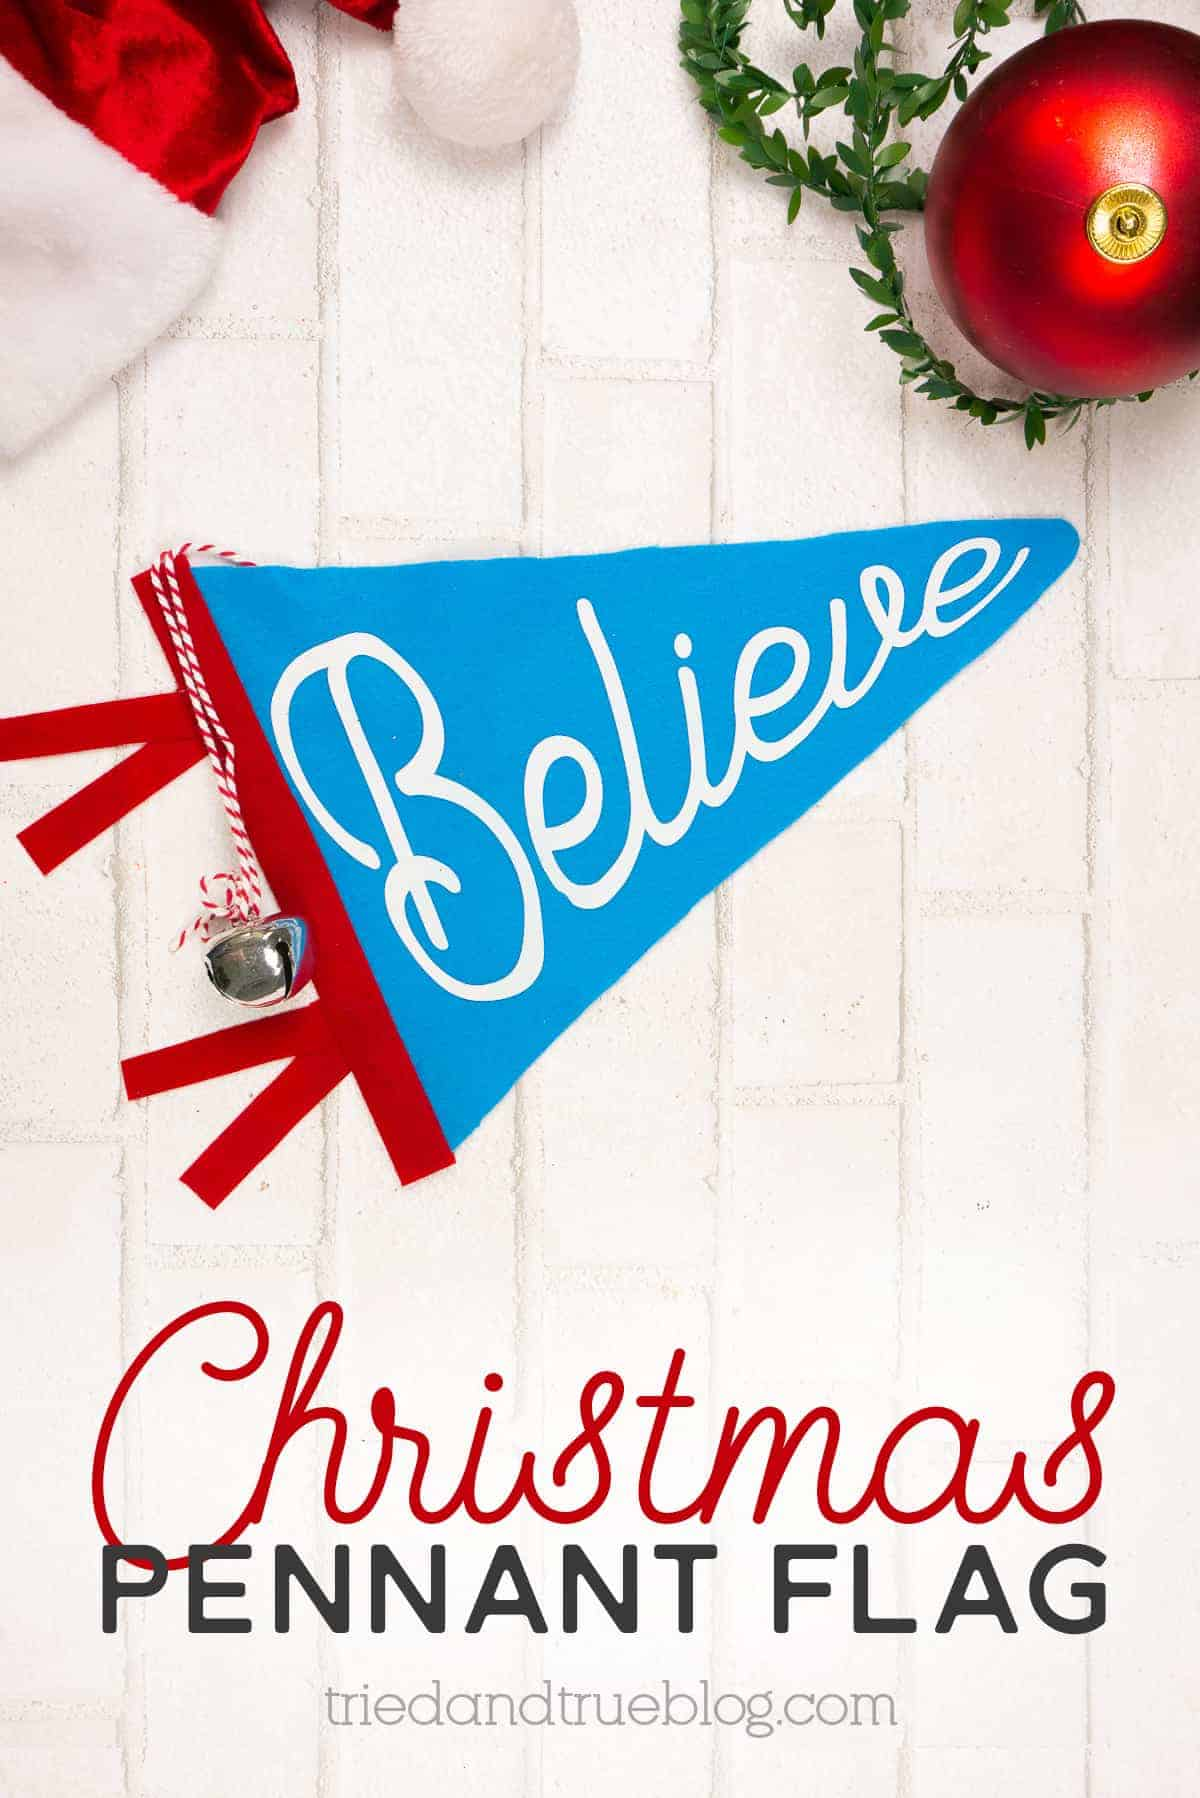 Blue Christmas Felt Pennant Flag on a white brick background with various Christmas supplies.